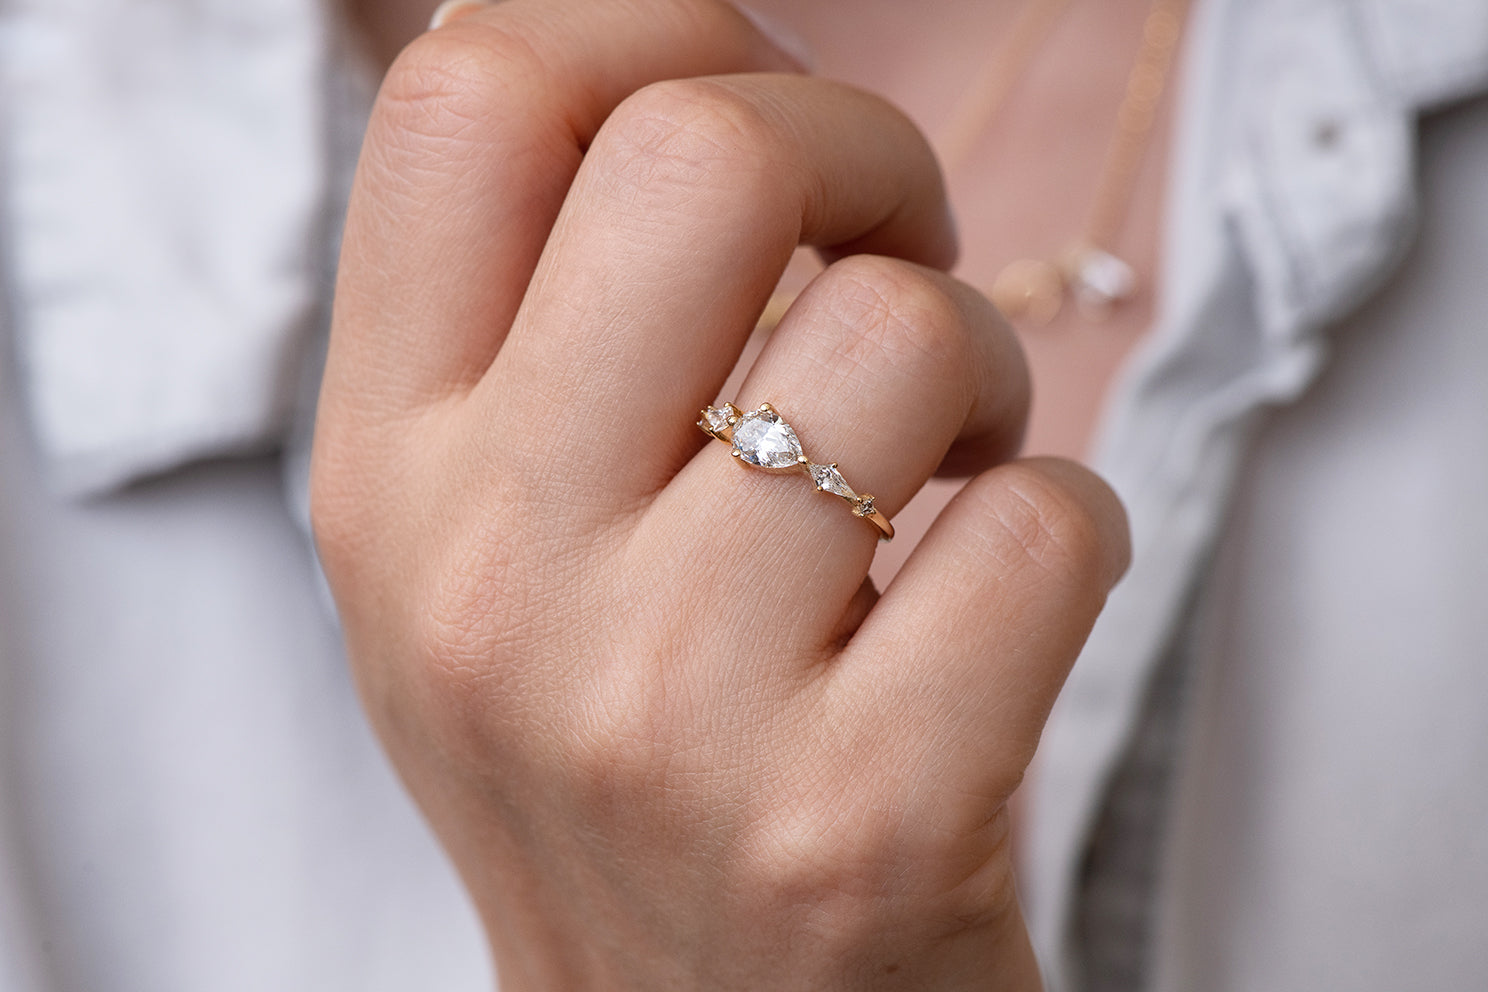 Pear Shaped Engagement Ring - Diamond Lineup Ring Up Close View on Hand